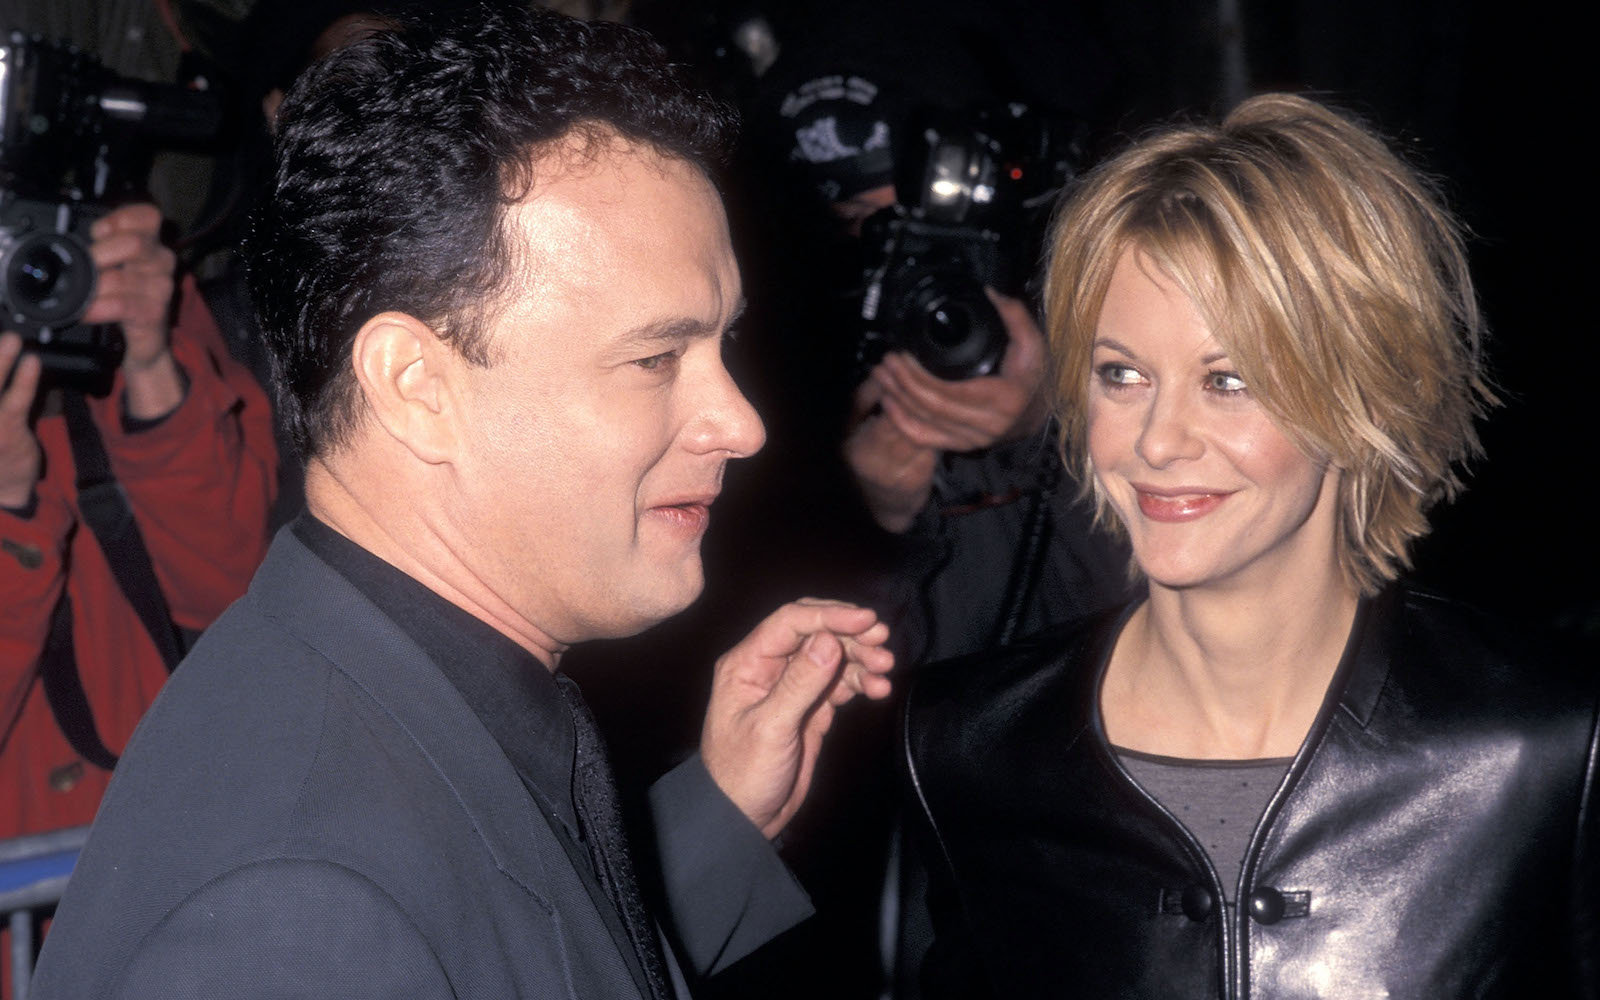 Actor Tom Hanks and actress Meg Ryan attend the 'You've Got Mail' New York City Premiere on December 10, 1998 at the Ziegfeld Theater in New York City.